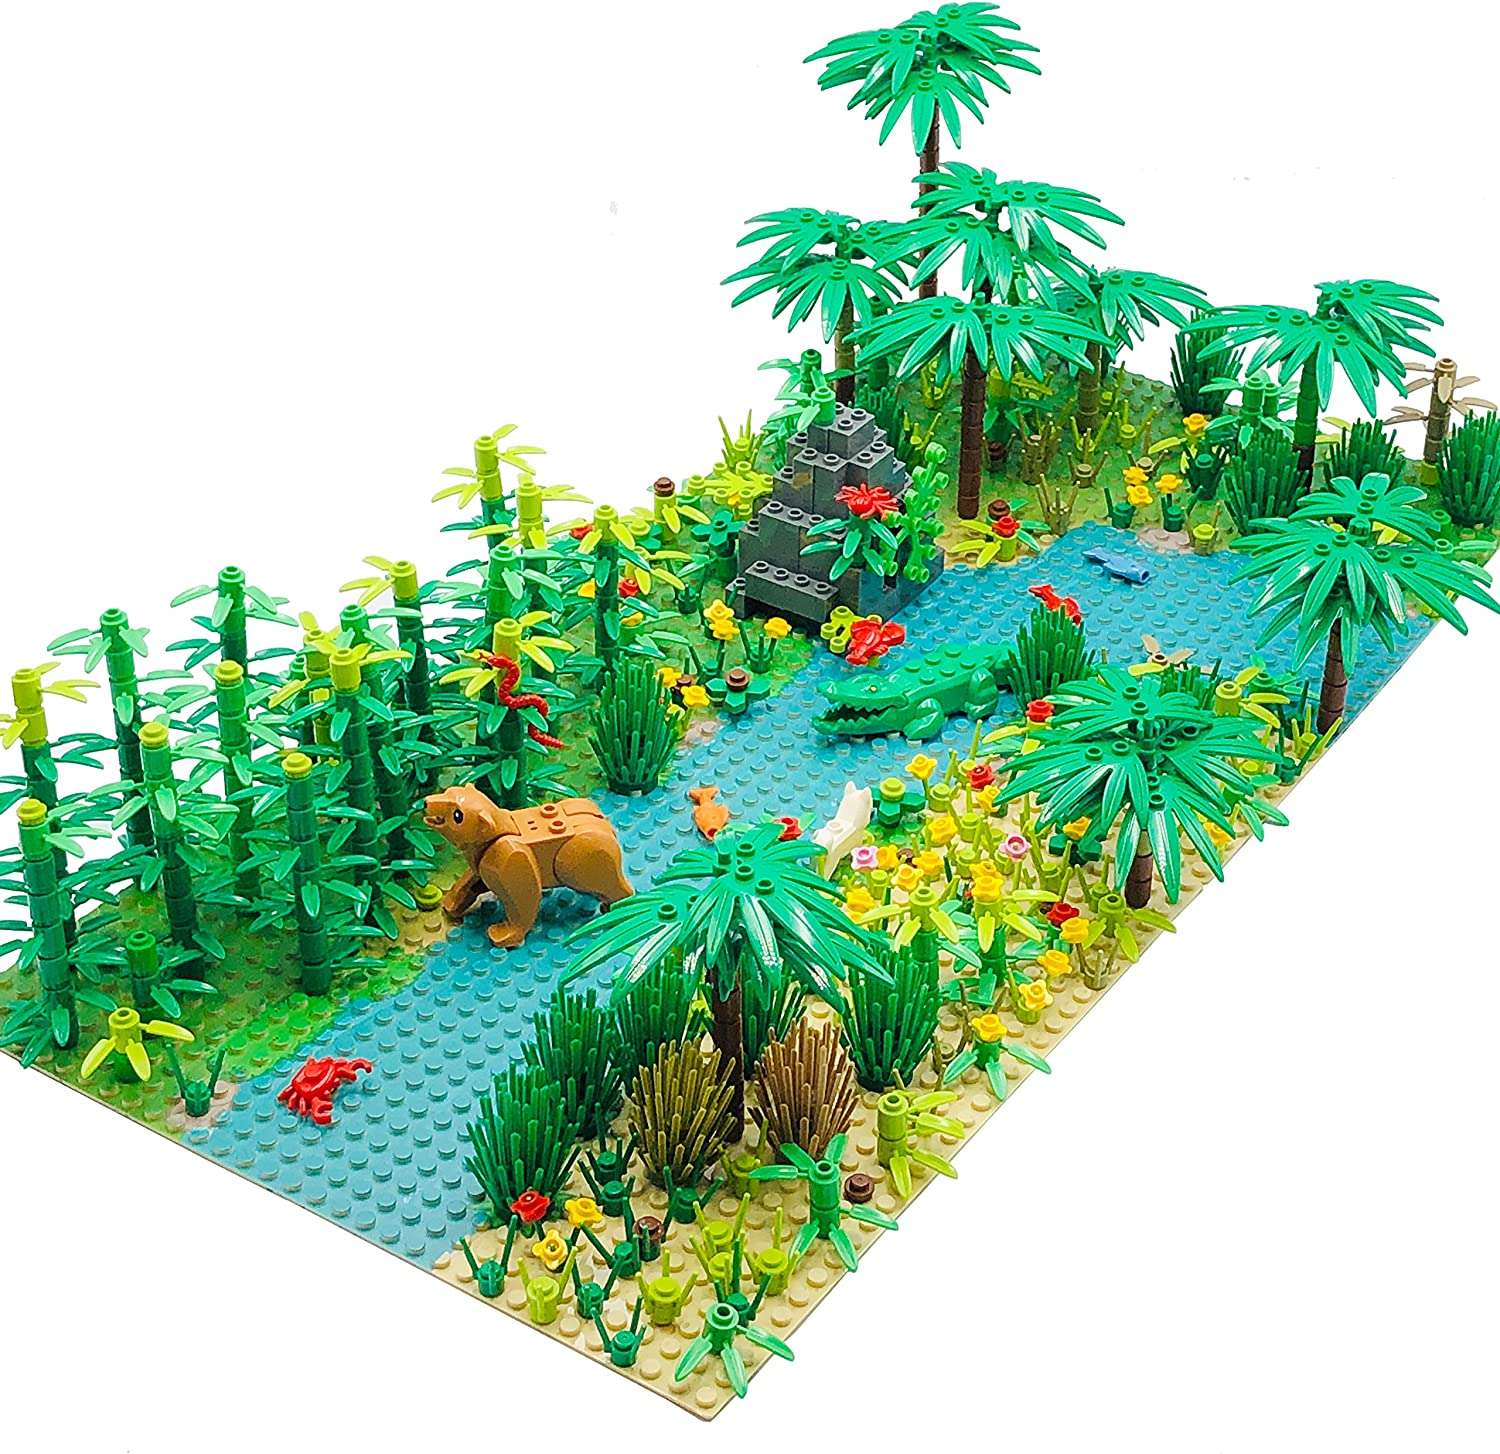 2 Pieces 10 Base Plates Plants Trees Flowers Scenery Accessories Animals Building Bricks Toy Set Compatible with All Major Brands Forest Garden Building Sets Parts